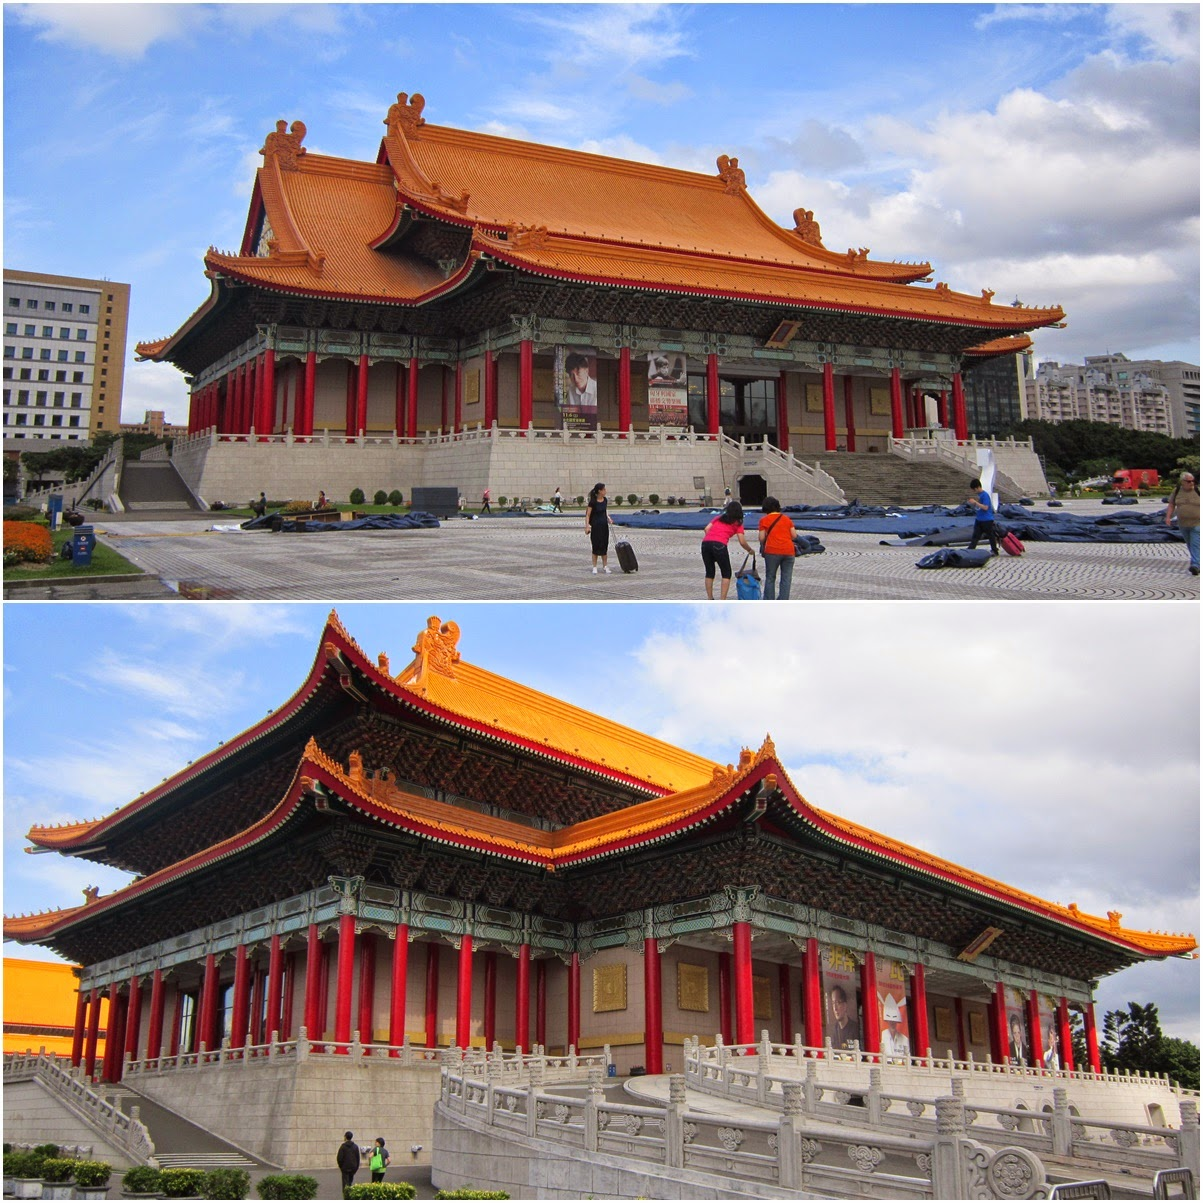 The Concert Hall (top) and The Theatre Hall (bottom) at Chiang Kai Shek Memorial Hall in Taipei, Taiwan